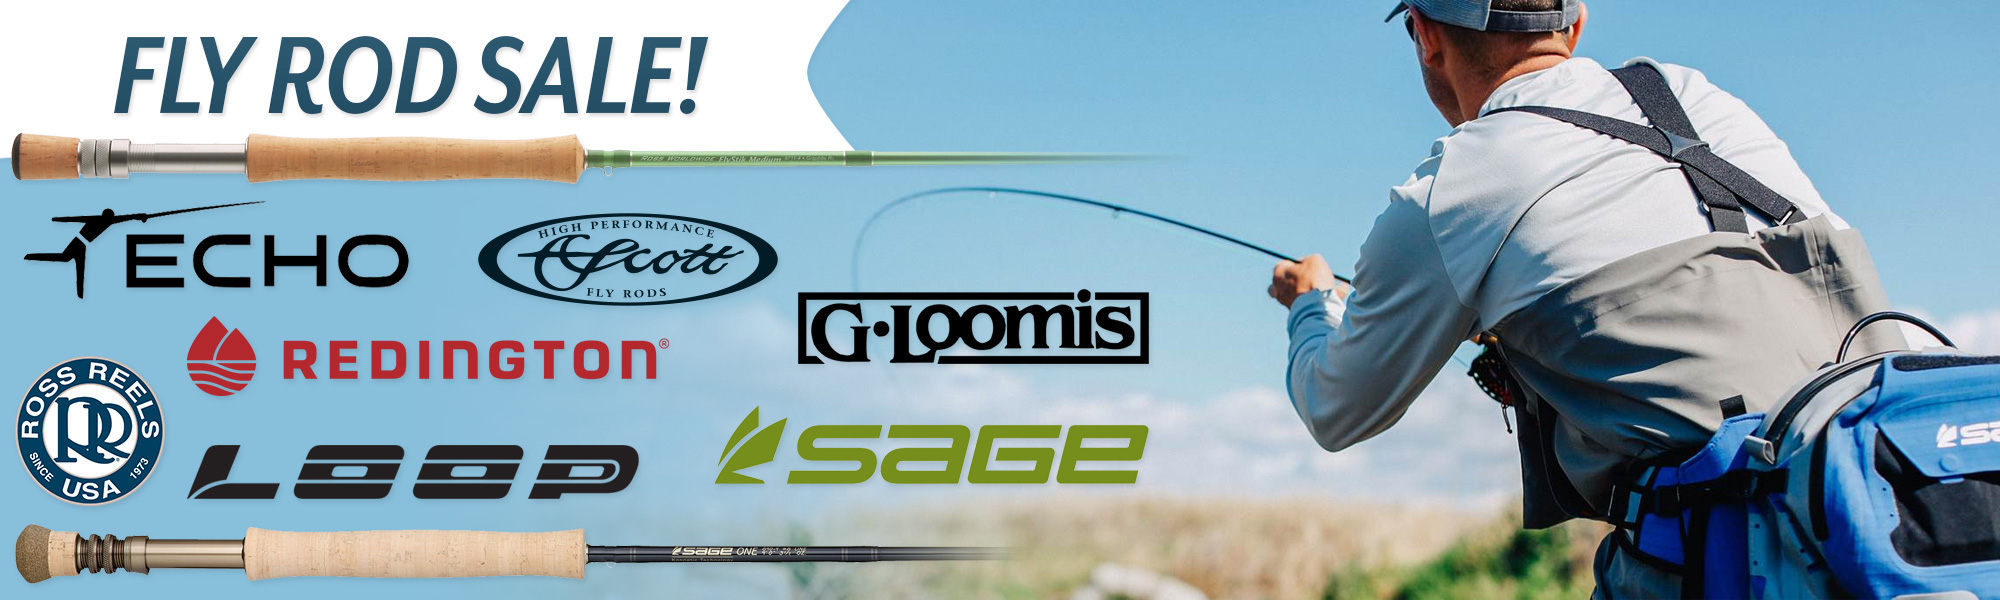 35 percent discounts on select fly rods from Sage, G.Loomis, Ross Reels, ECHO and more